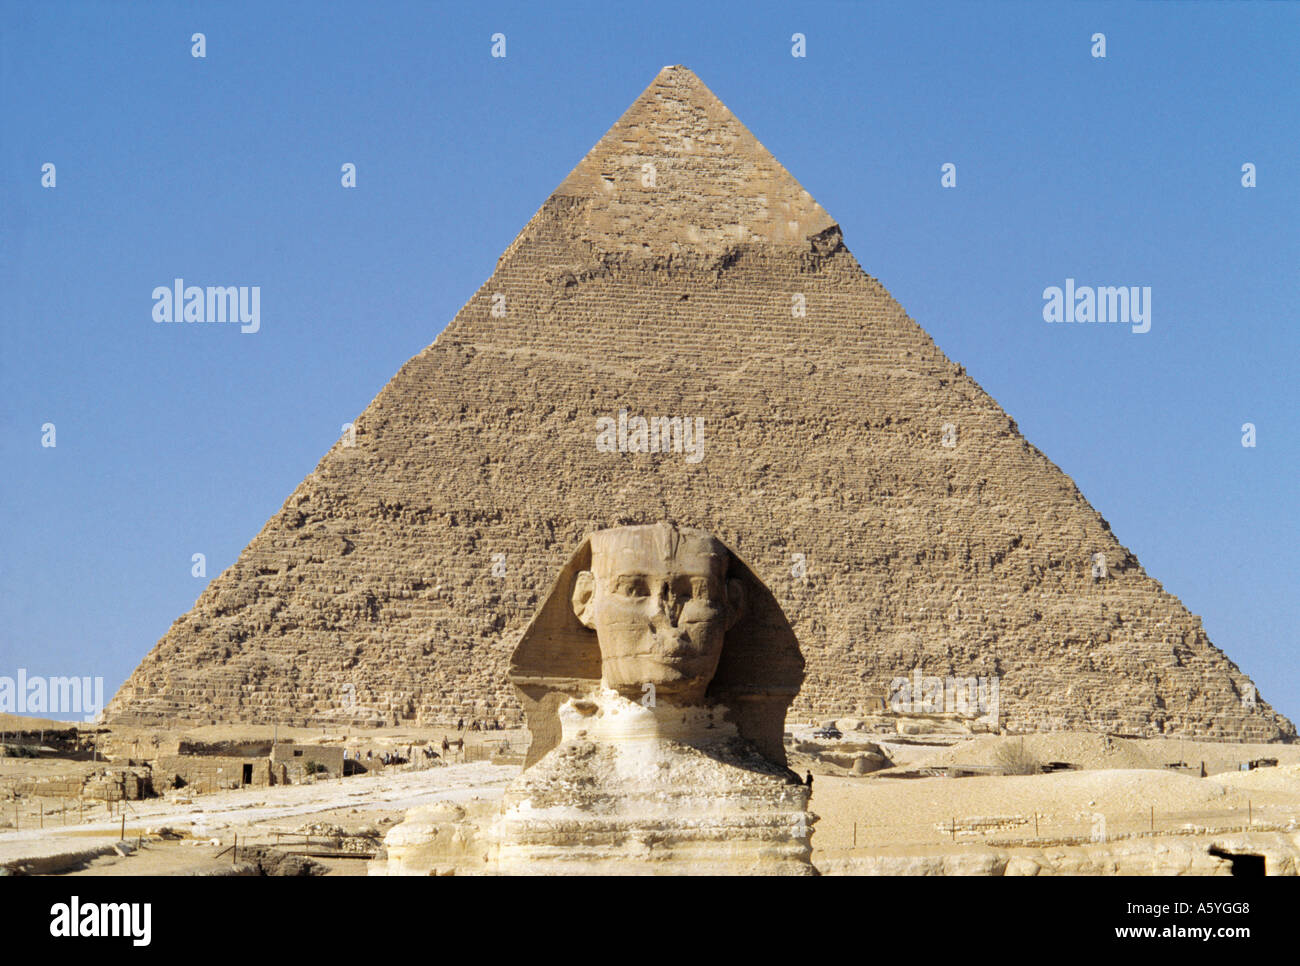 worksheet Sphinx Statue statue in front of pyramid the sphinx chephren giza cairo egypt